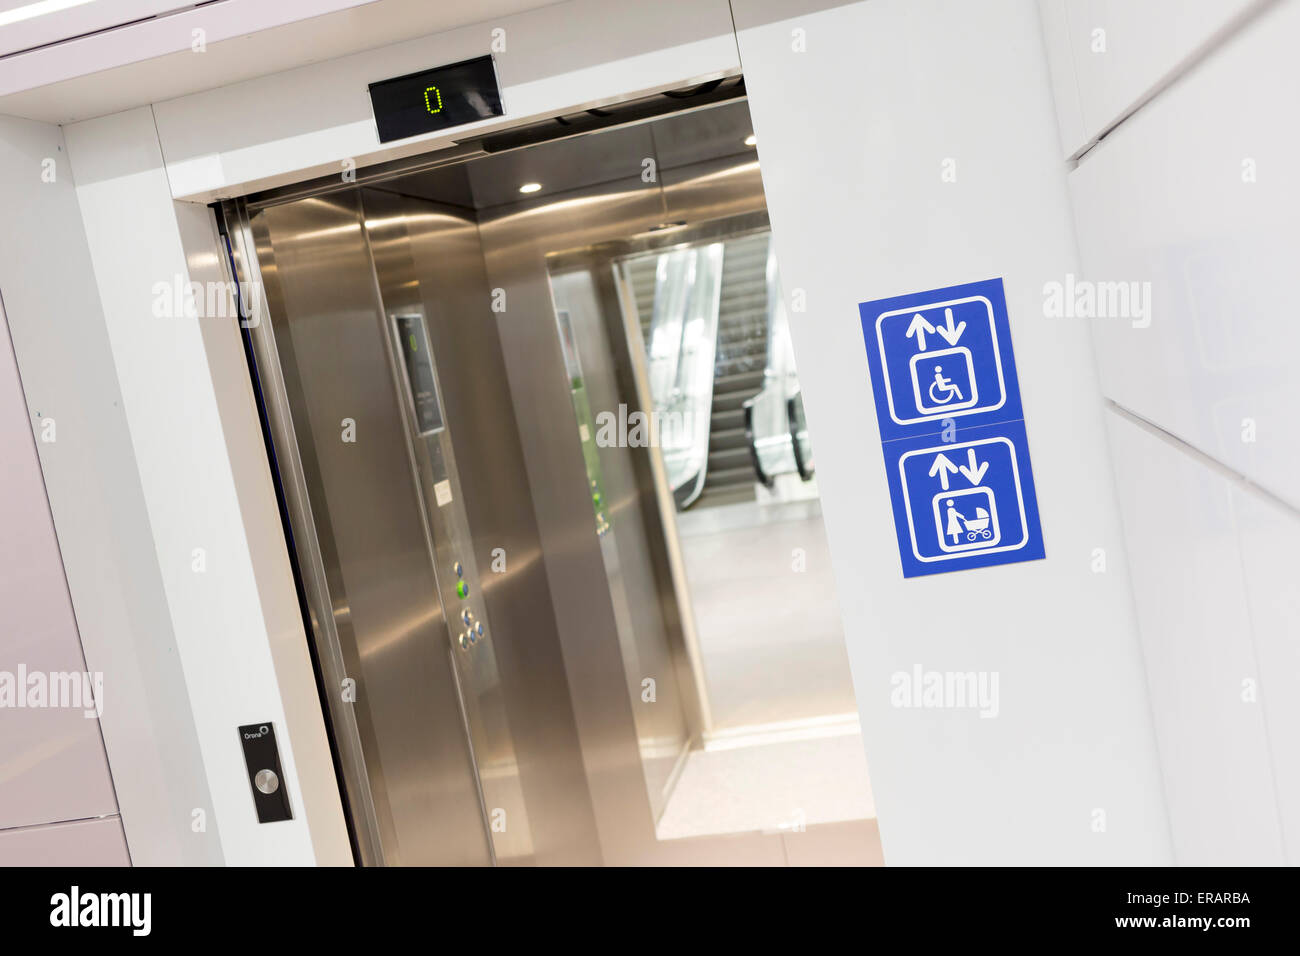 Elevator for mothers and children and physically disabled people in wheelchairs. - Stock Image